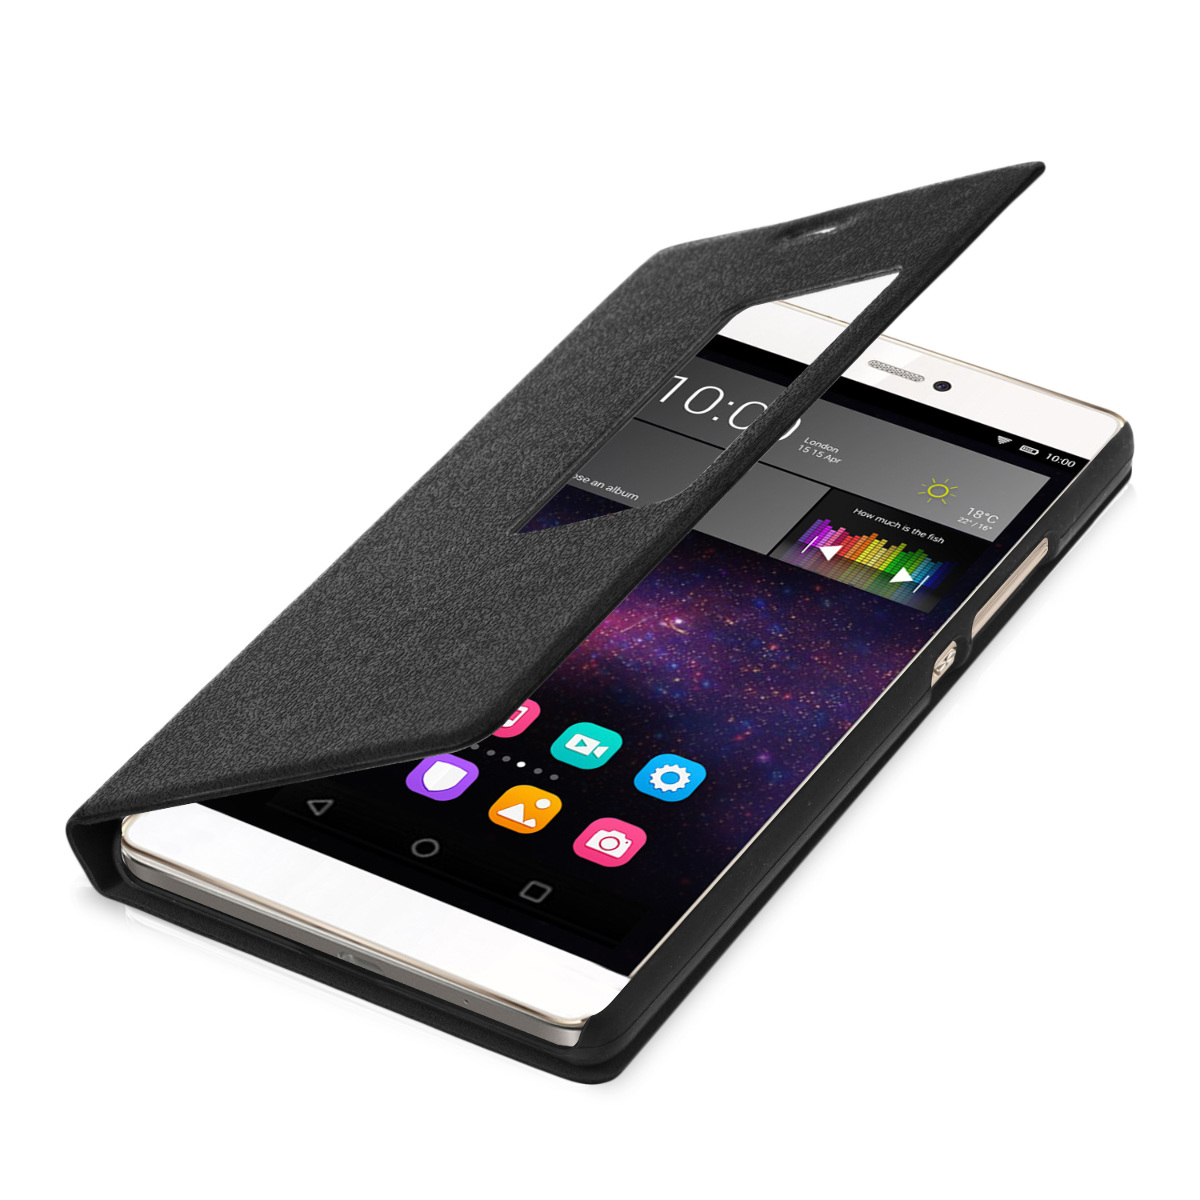 kwmobile FLIP COVER FOR HUAWEI P8 WINDOW CASE SLIM BACK SHELL HARD MOBILE PHONE